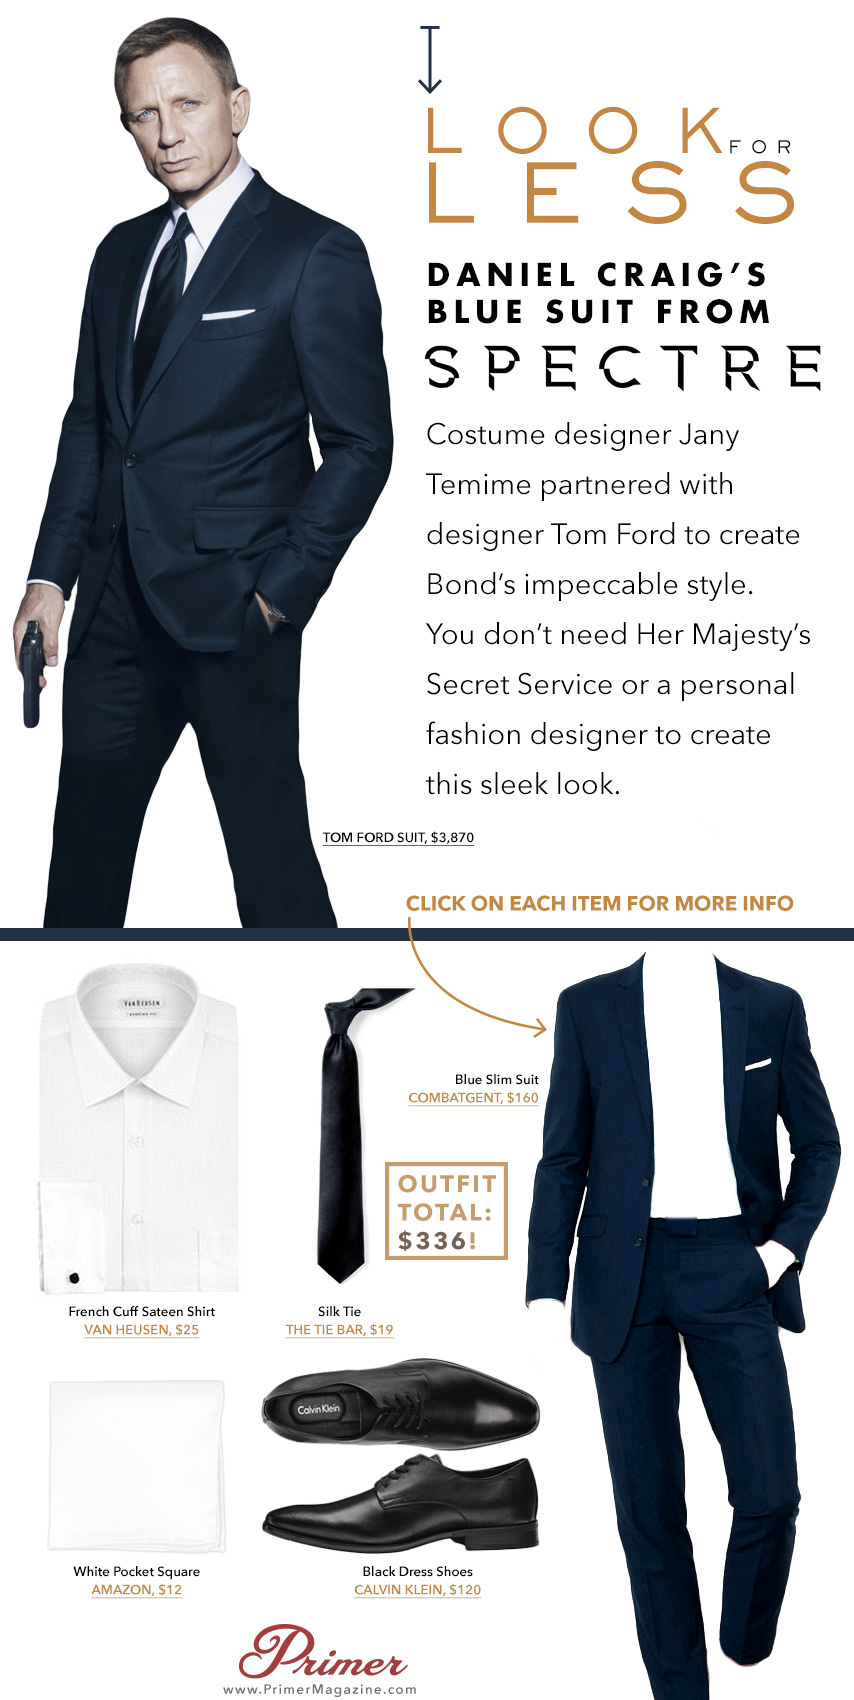 Daniel Craig wearing a navy suit and tie in spectre with affordable alternatives